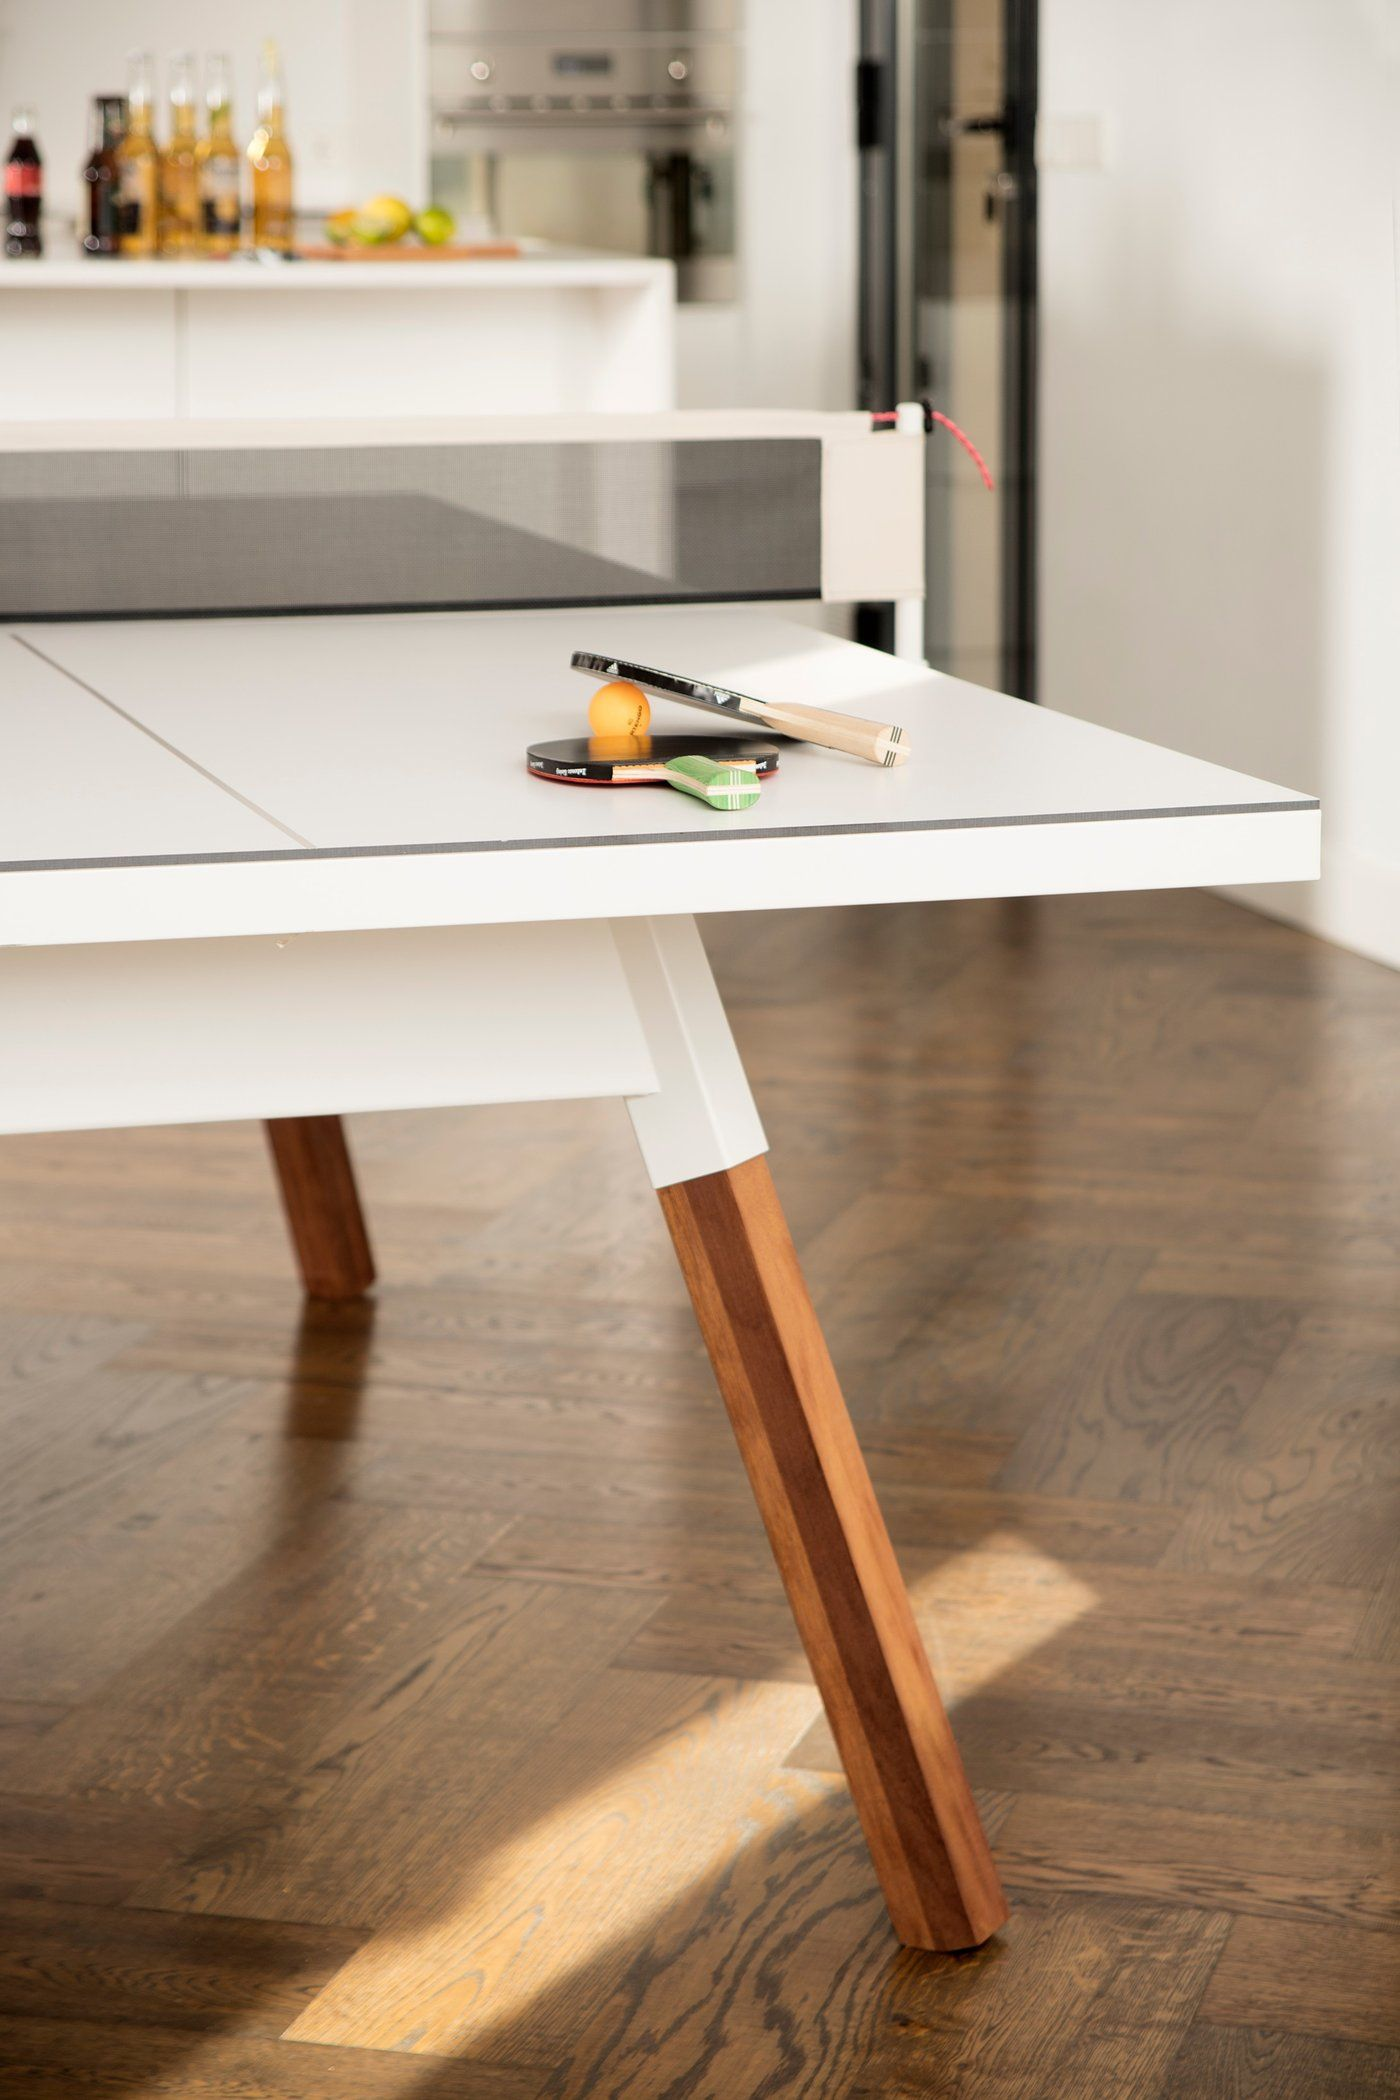 Table Tennis Room Design: Pin By Z D K On Home Design In 2020